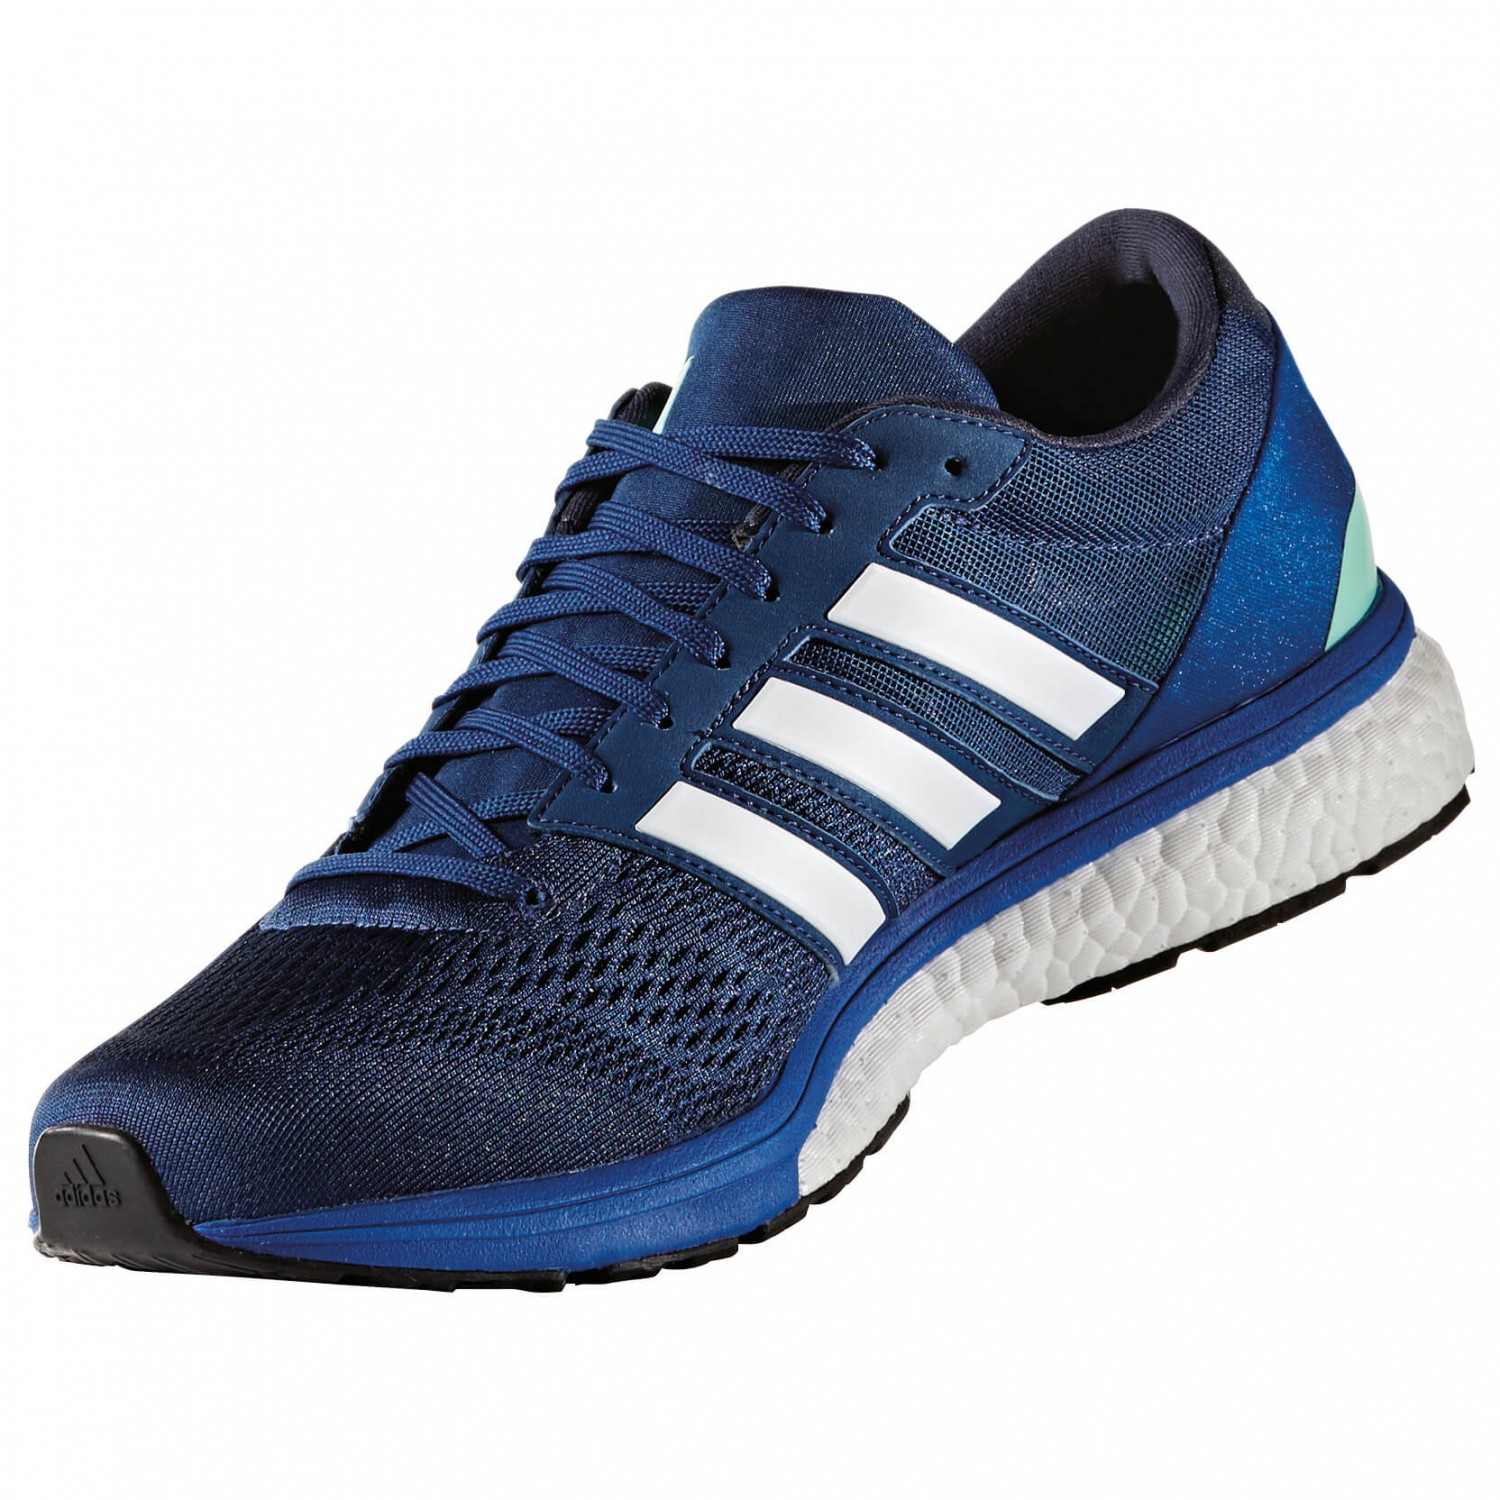 Adidas Adizero Boston 6 - Running Shoes Men's | Buy online